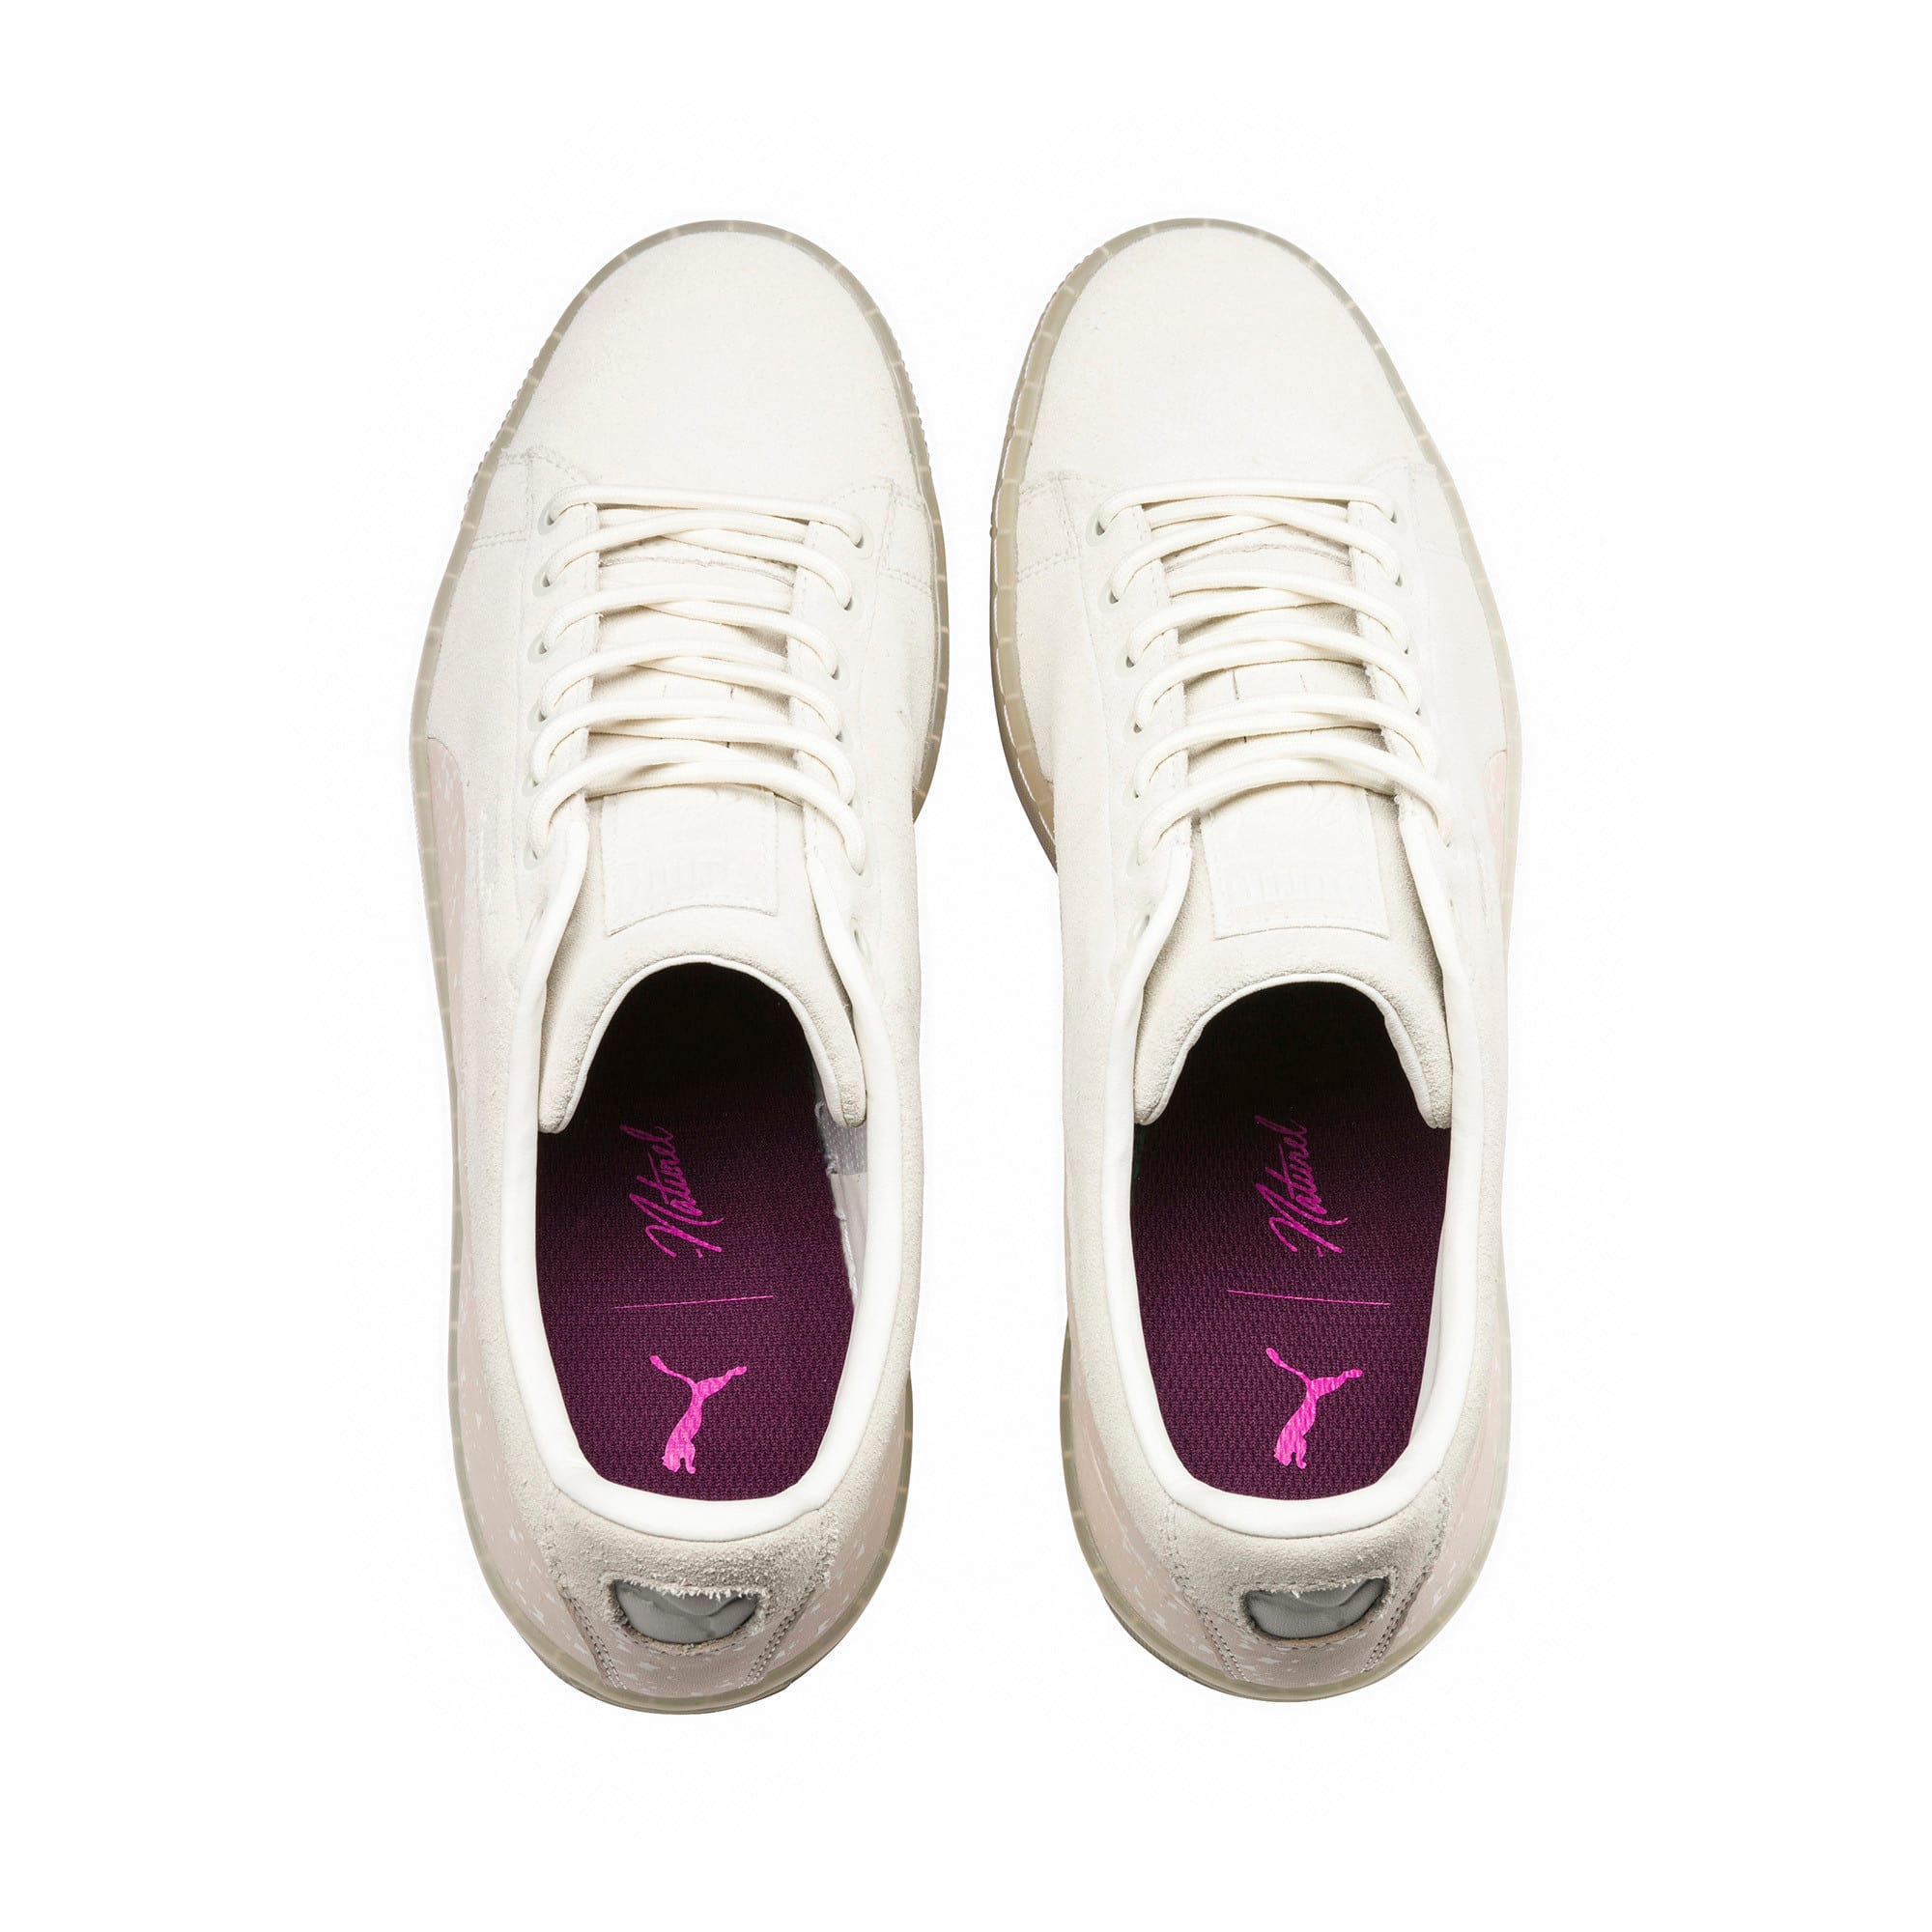 Thumbnail 5 of PUMA x NATUREL Suede Sneakers, Whisper White-Almond, medium